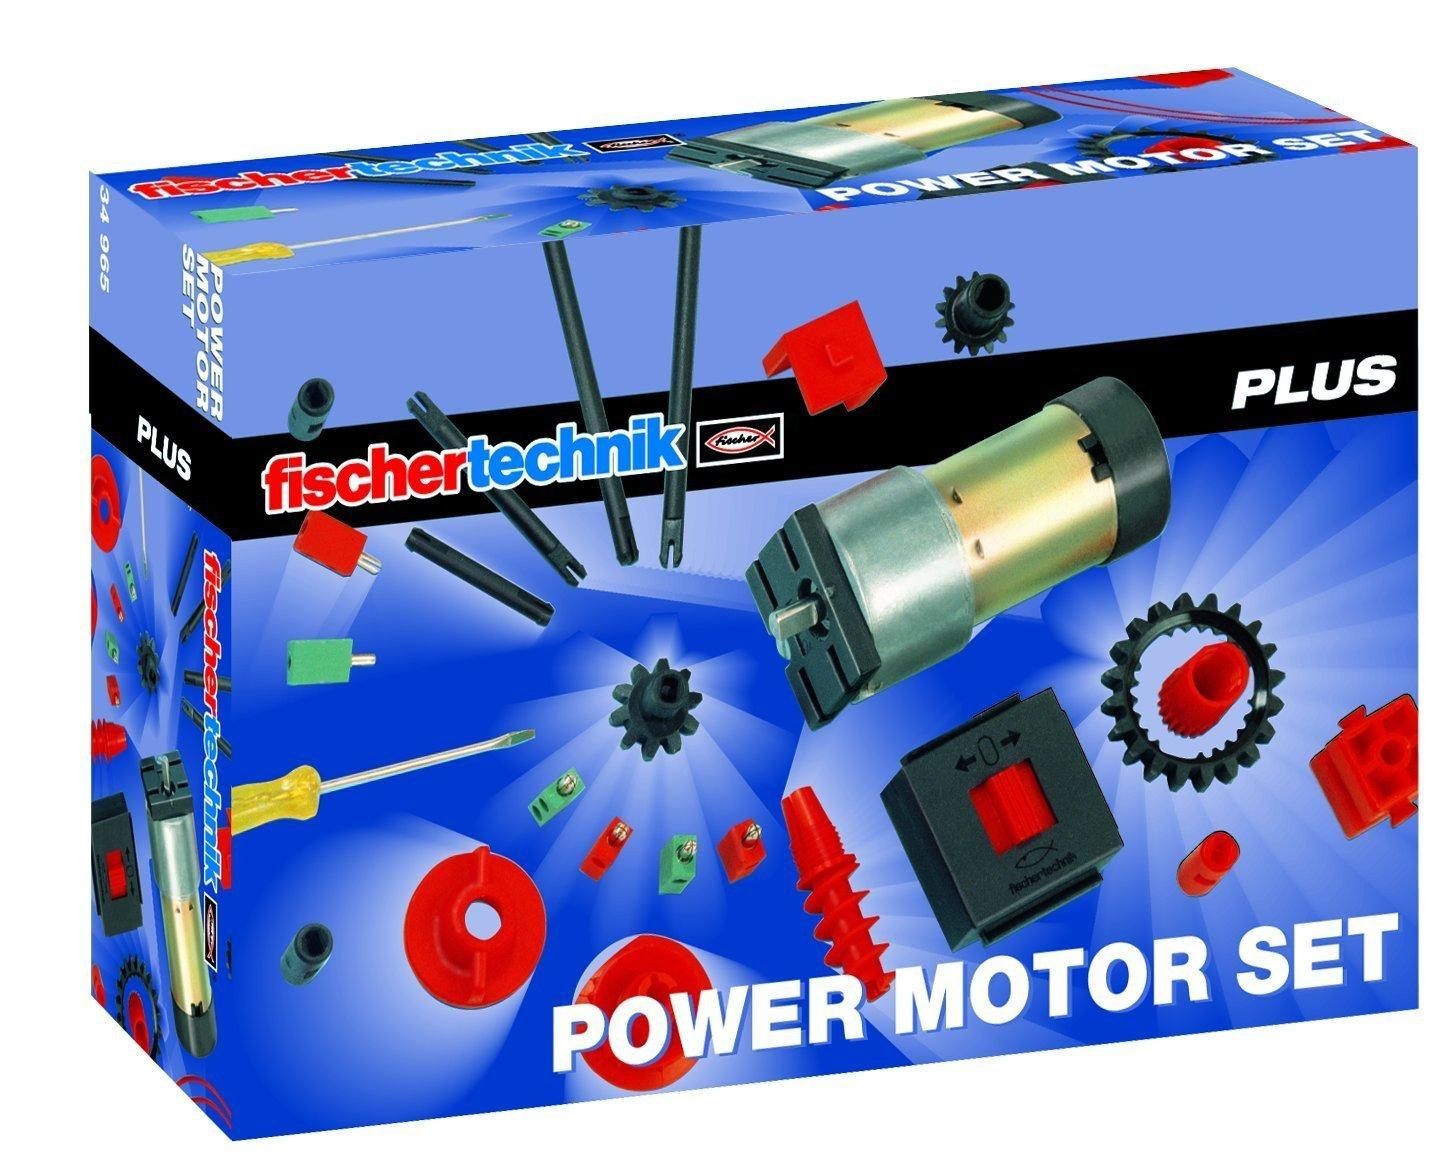 Power motor set